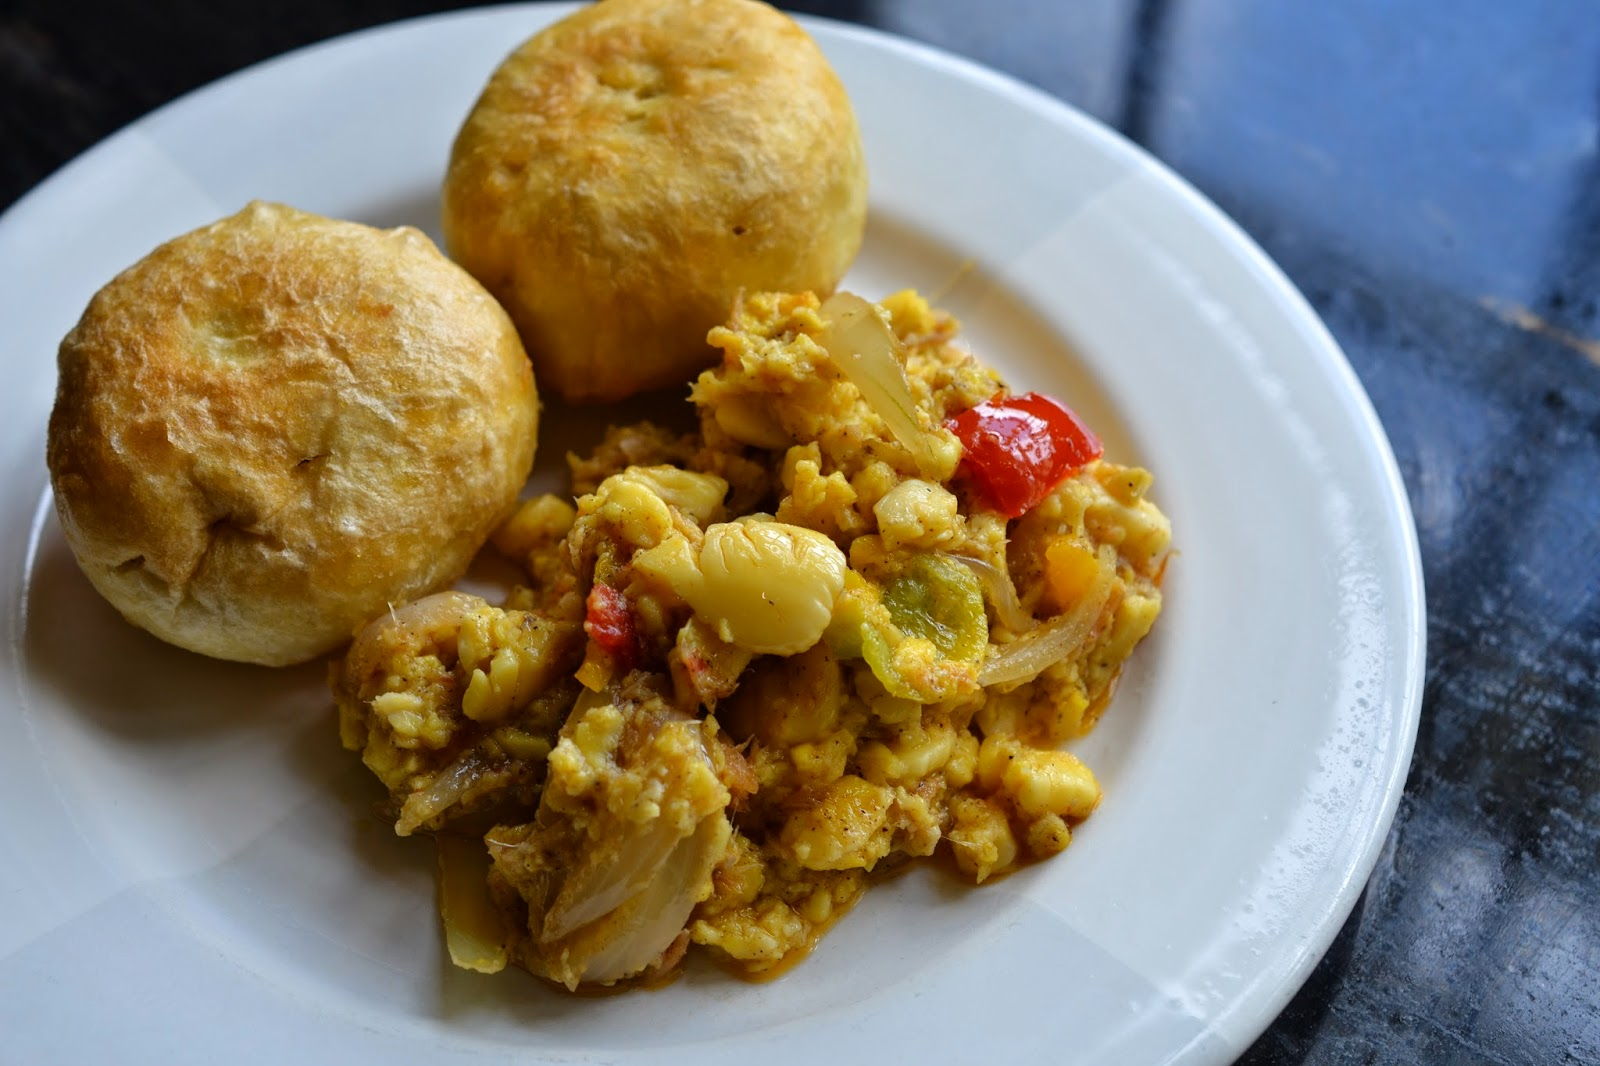 greedy girl ackee and saltfish with fried dumplings